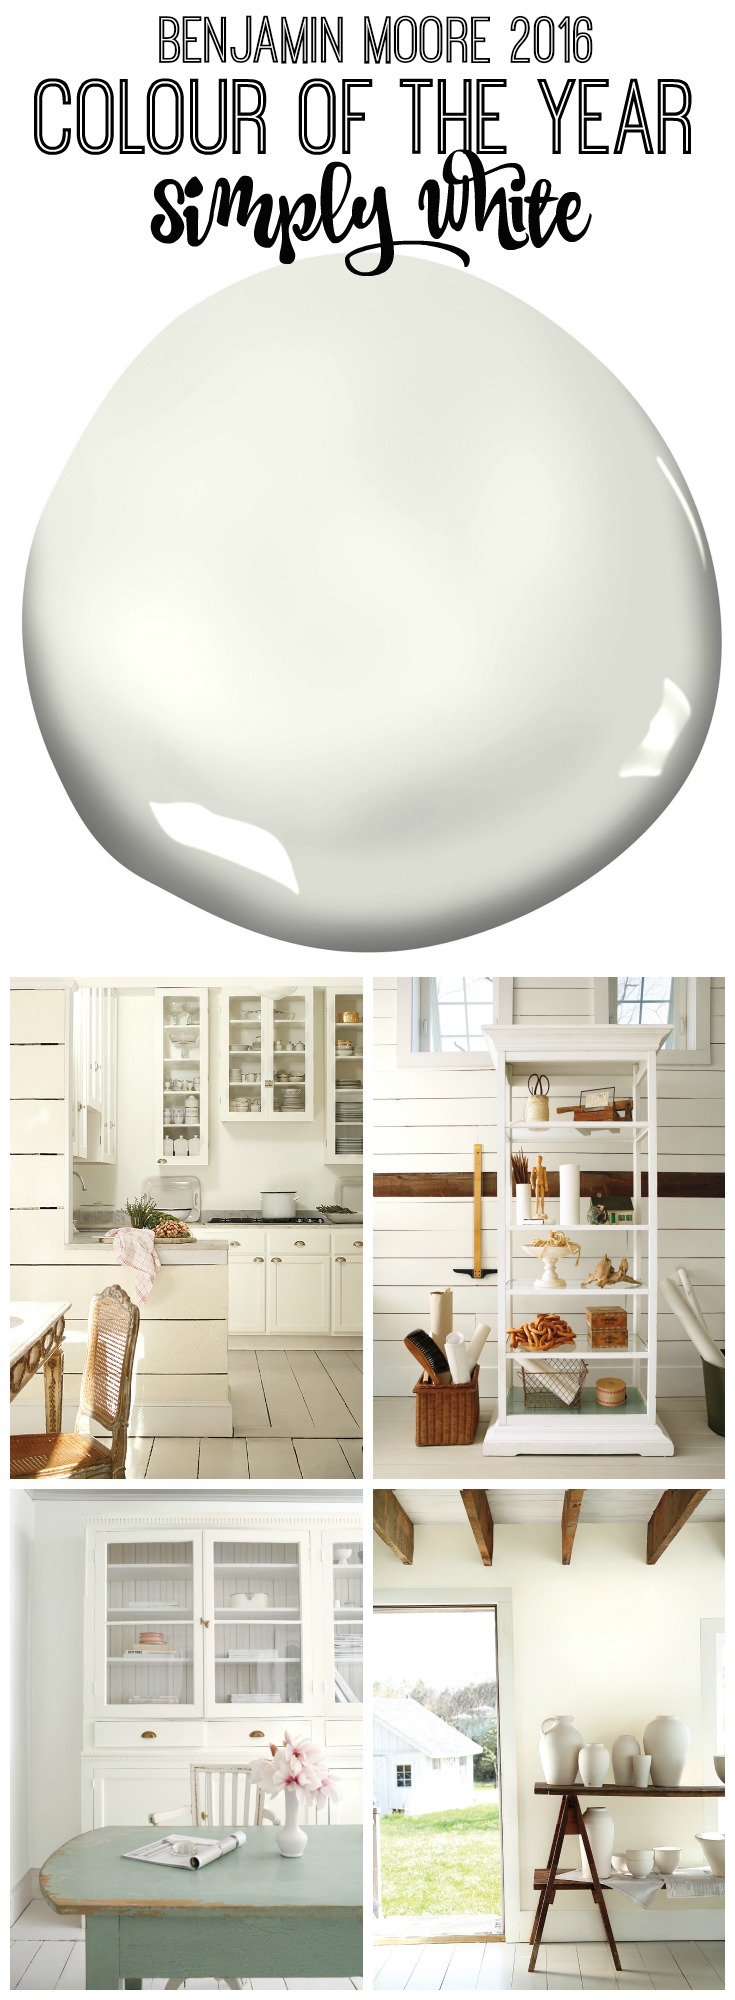 Benjamin-Moore-Colour-of-the-Year-Simply-White-ColorTrends-Benjamin-Moore-wallpaper-wp5005194